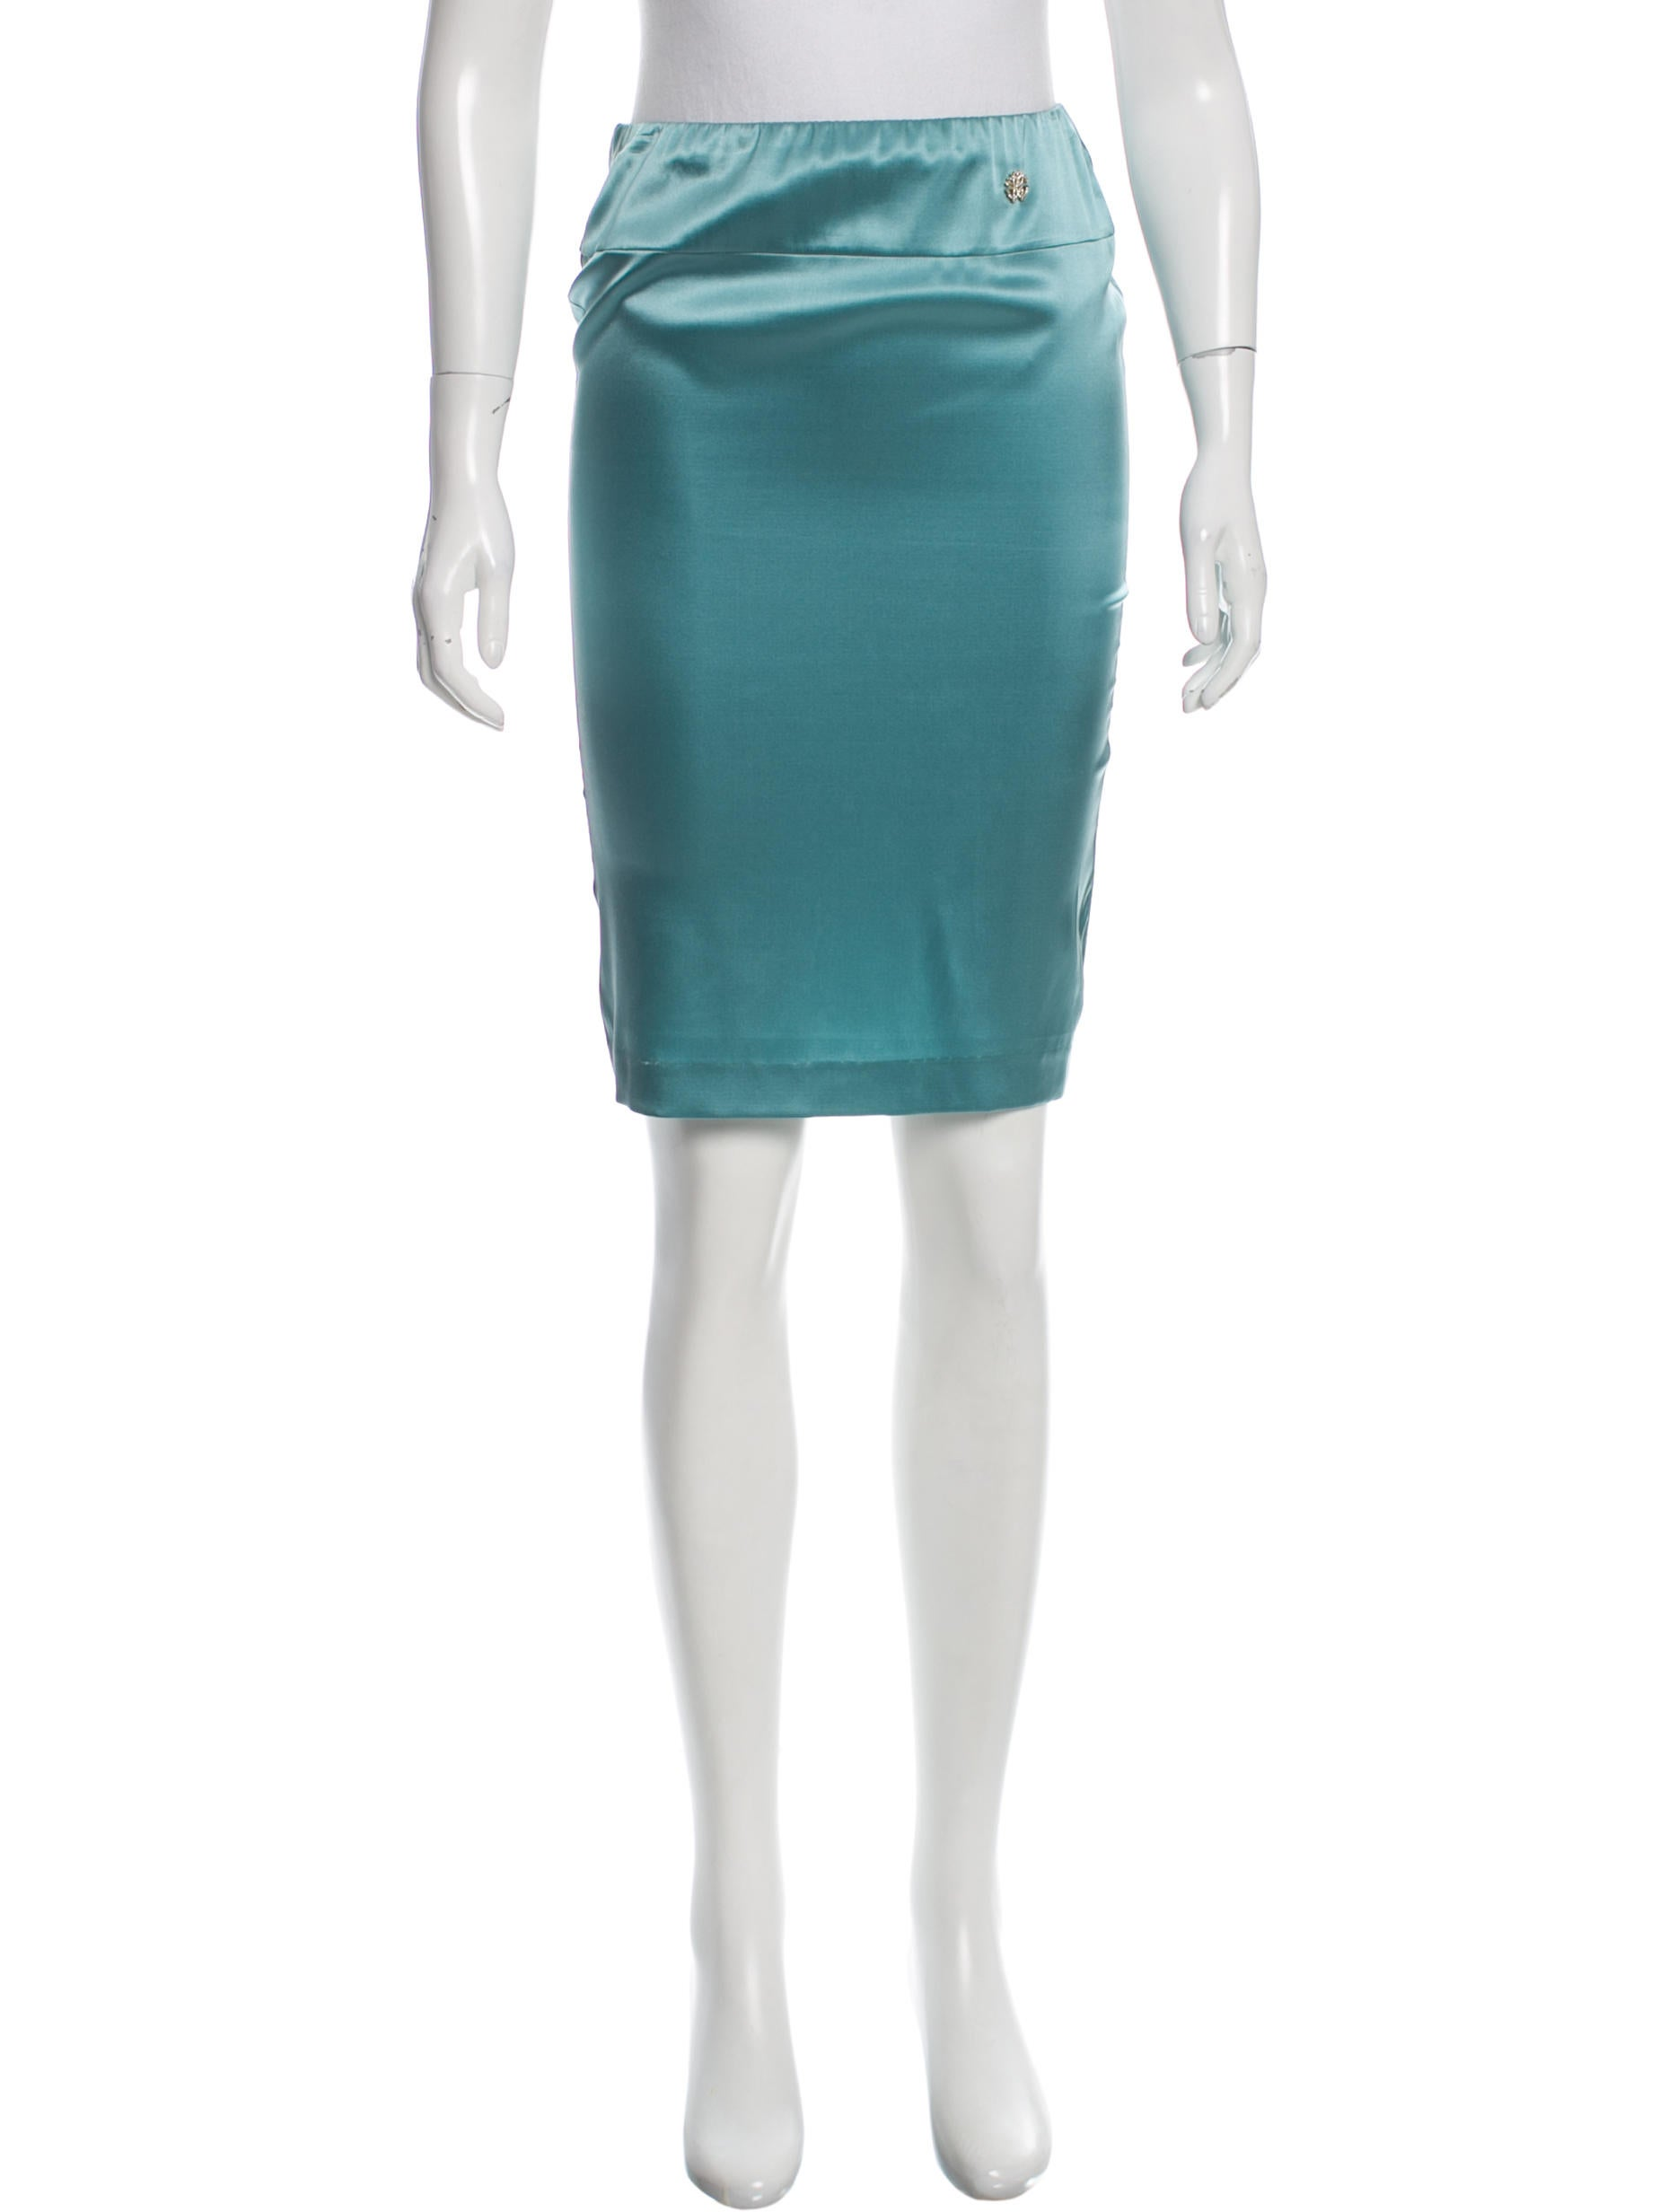 Contemporary Flatware Roberto Cavalli Satin Pencil Skirt Clothing Rob39419